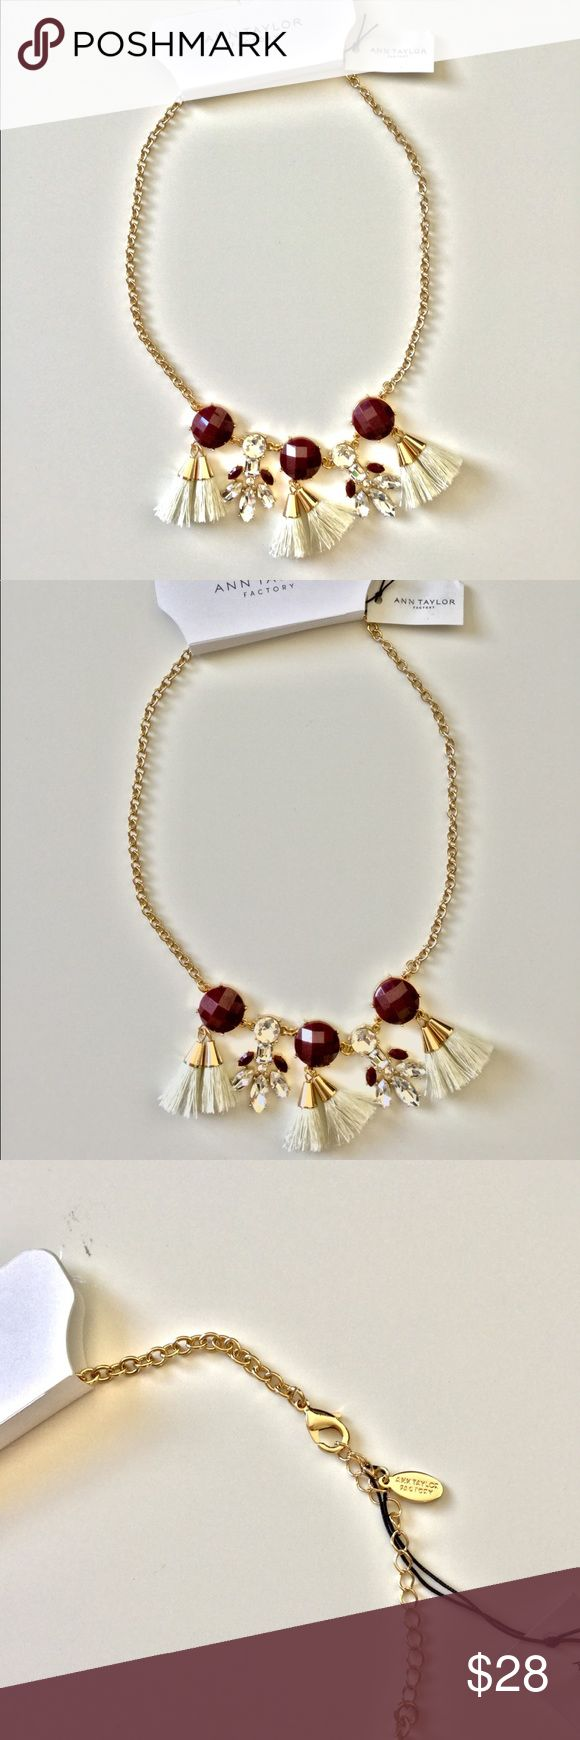 🆕 Ann Taylor Glam Necklace NWT Maroon color faceted resin 2.5 cm stones with beige tassels and clear resin crystals. Lobster clasp. 18 inches. New with tags from Ann Taylor Factory. Coordinating earrings are available in a separate listing. Bundle discount. Ann Taylor Factory Jewelry Necklaces